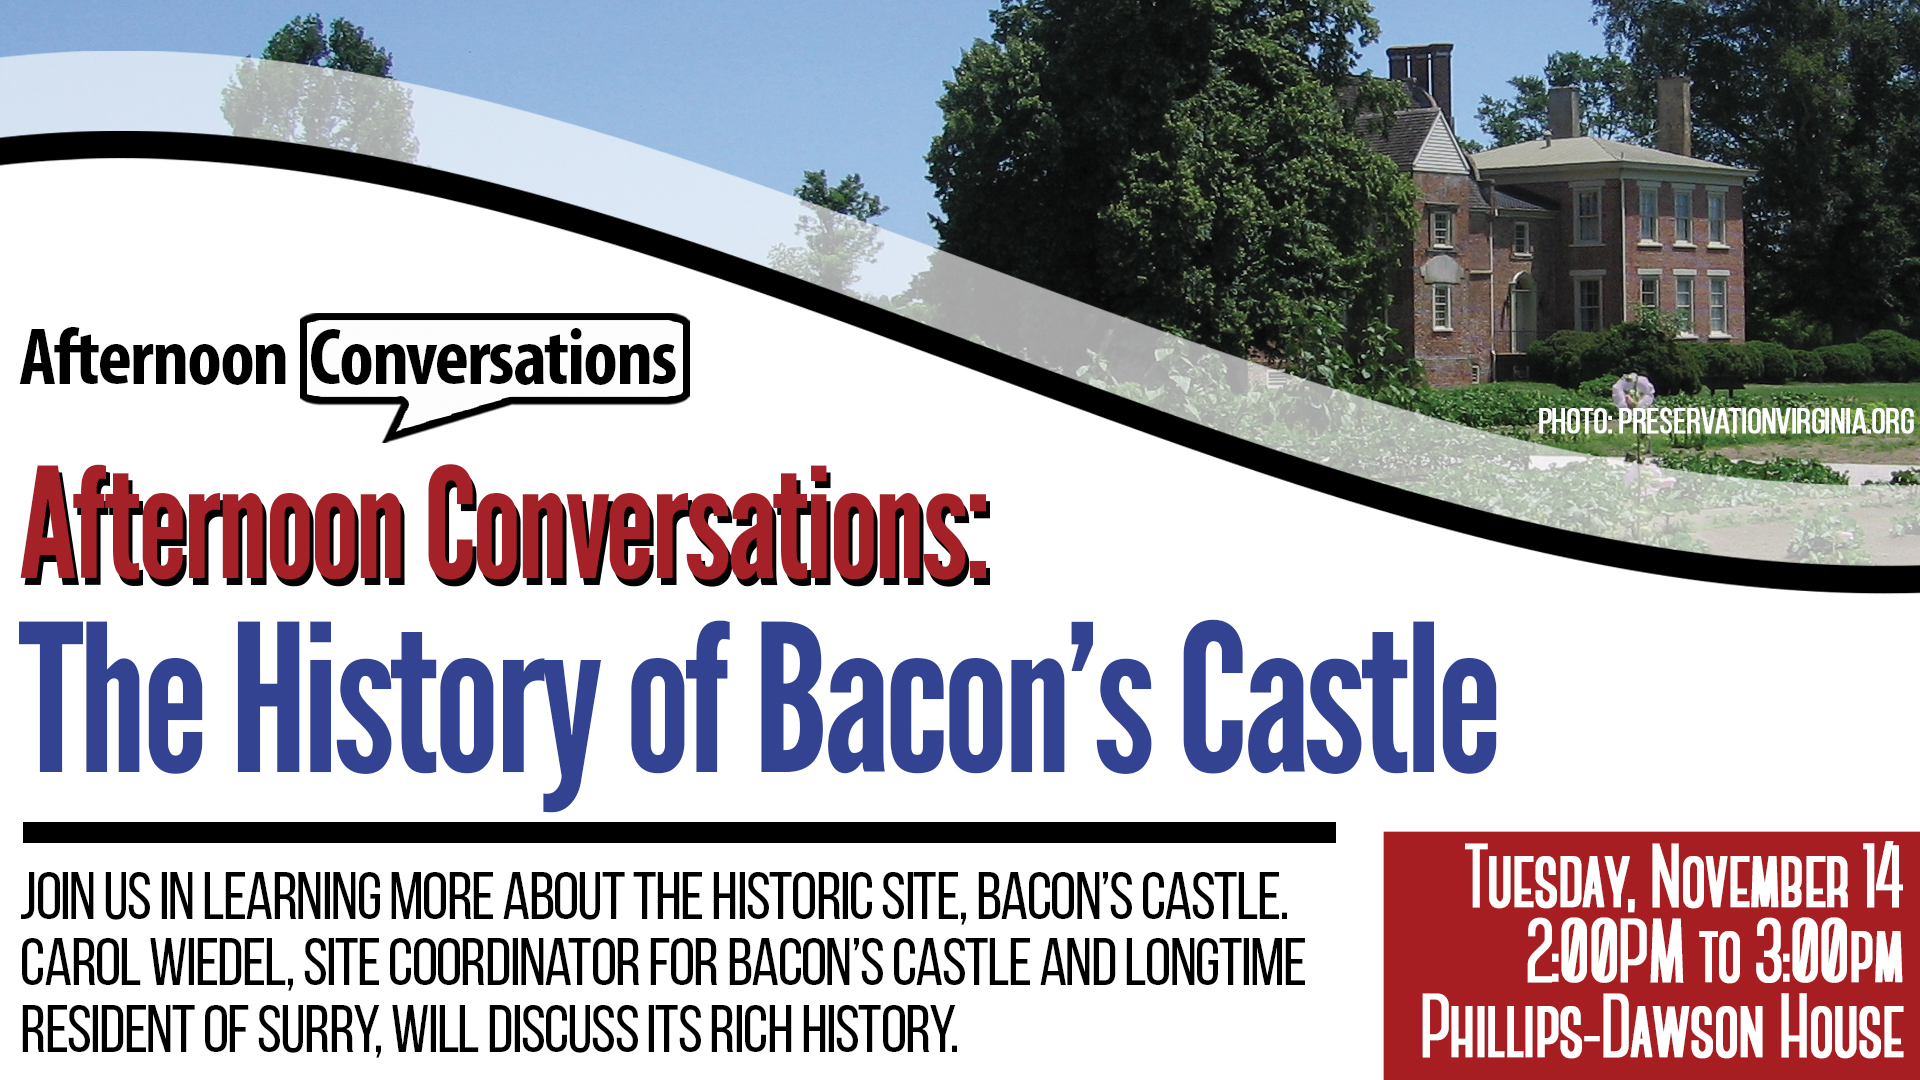 Afternoon Conversations: The History of Bacon's Castle